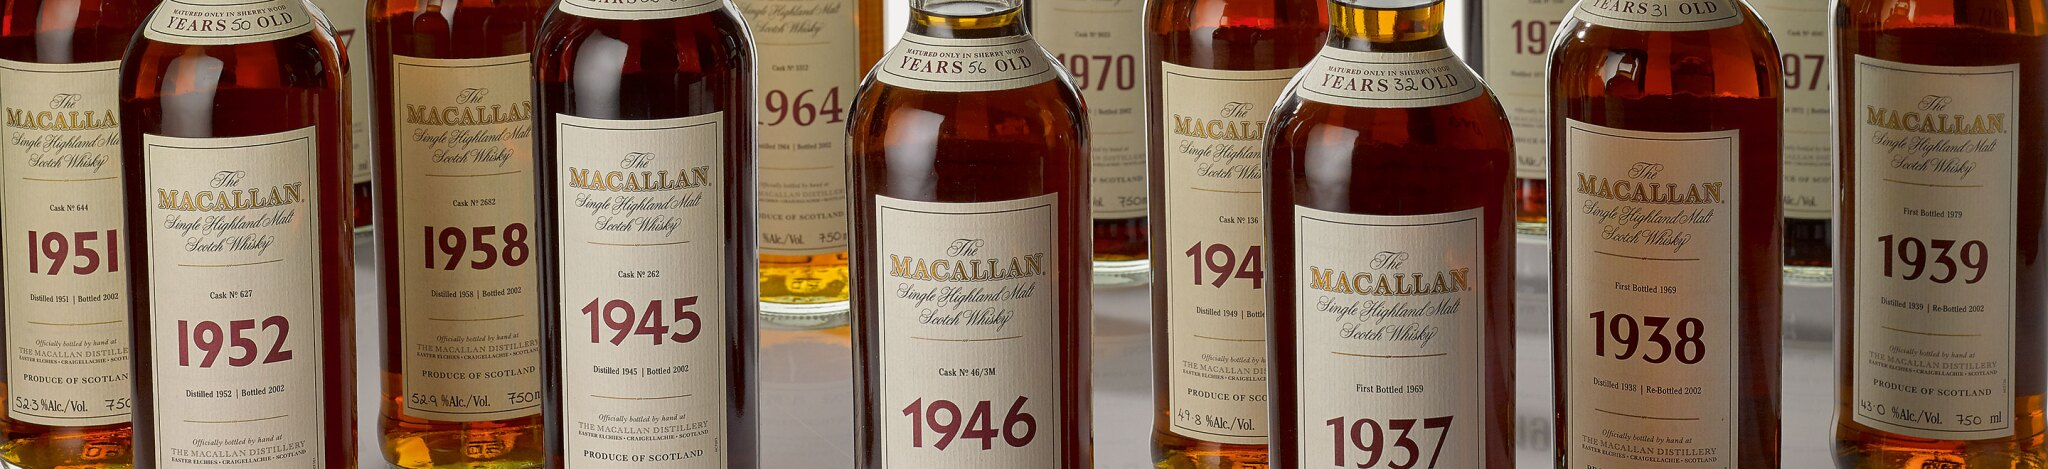 Distilled | The Macallan Fine & Rare Collection from Wing Hop Fung + More